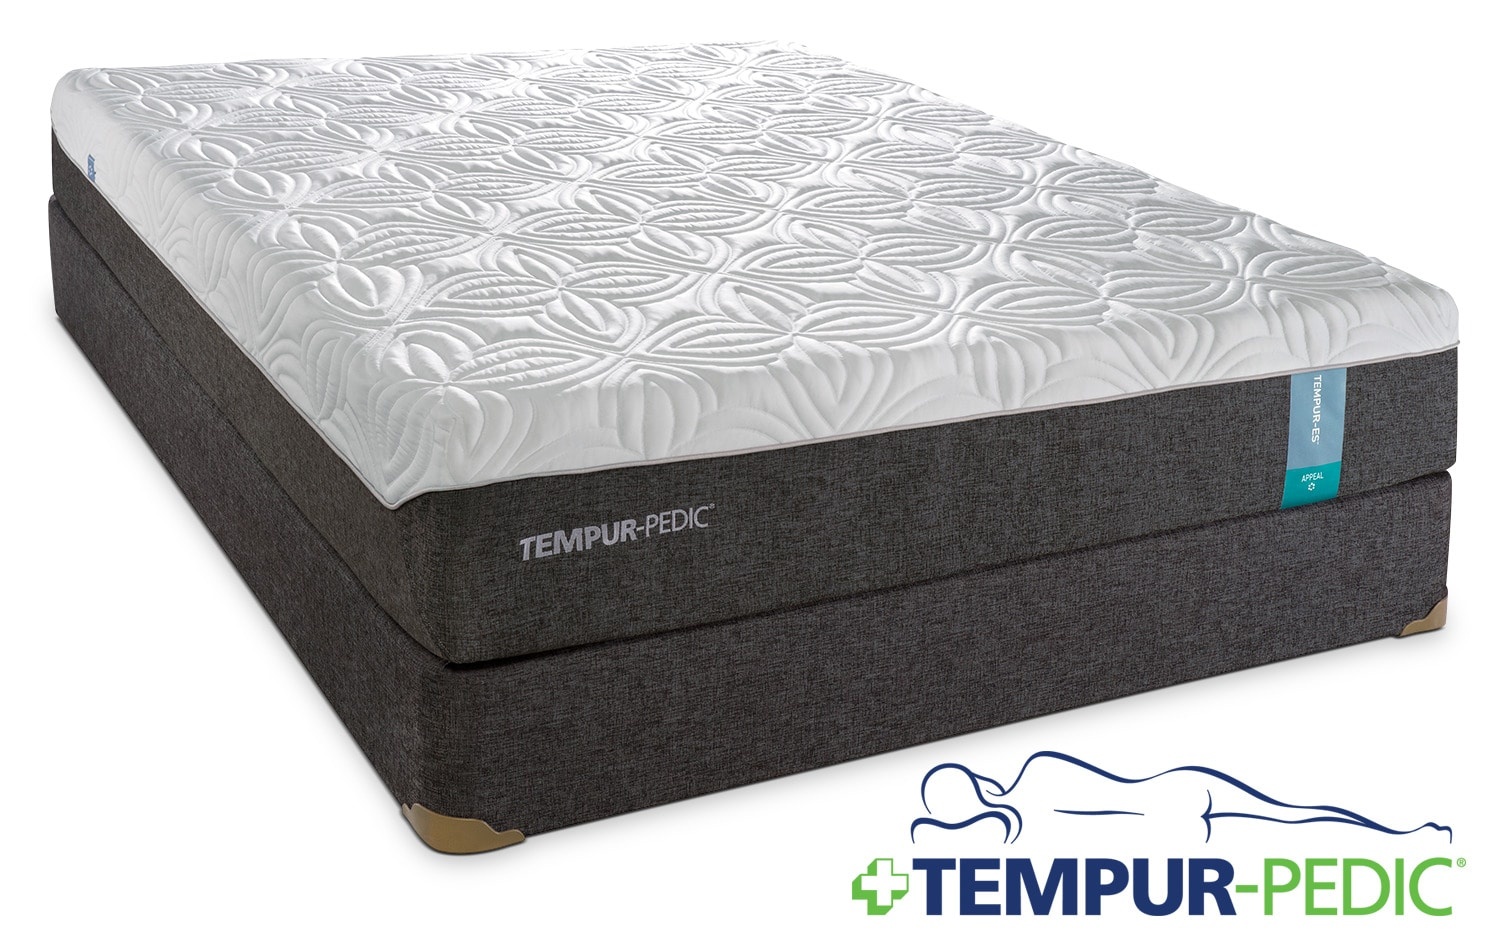 Mattresses and Bedding - Tempur-Pedic Appeal 2.0 Cushion Firm Queen Mattress and Boxspring Set